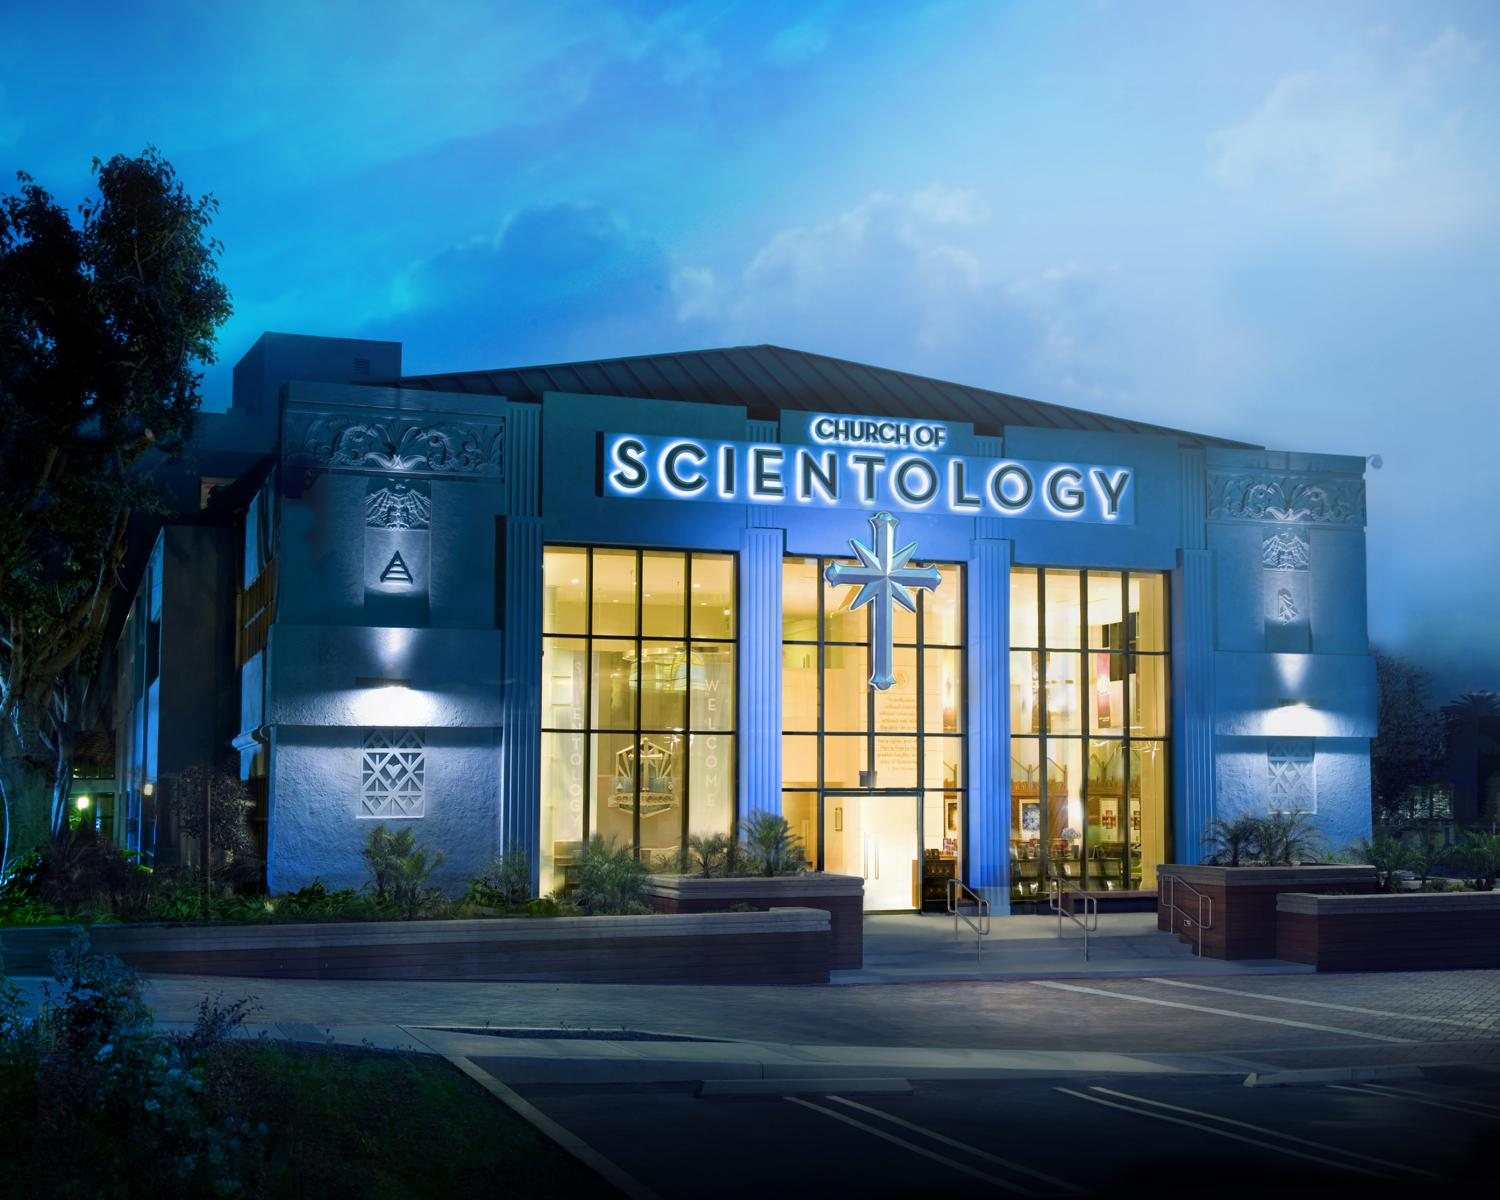 Photo by Scientology Media from creative commons used with permission.